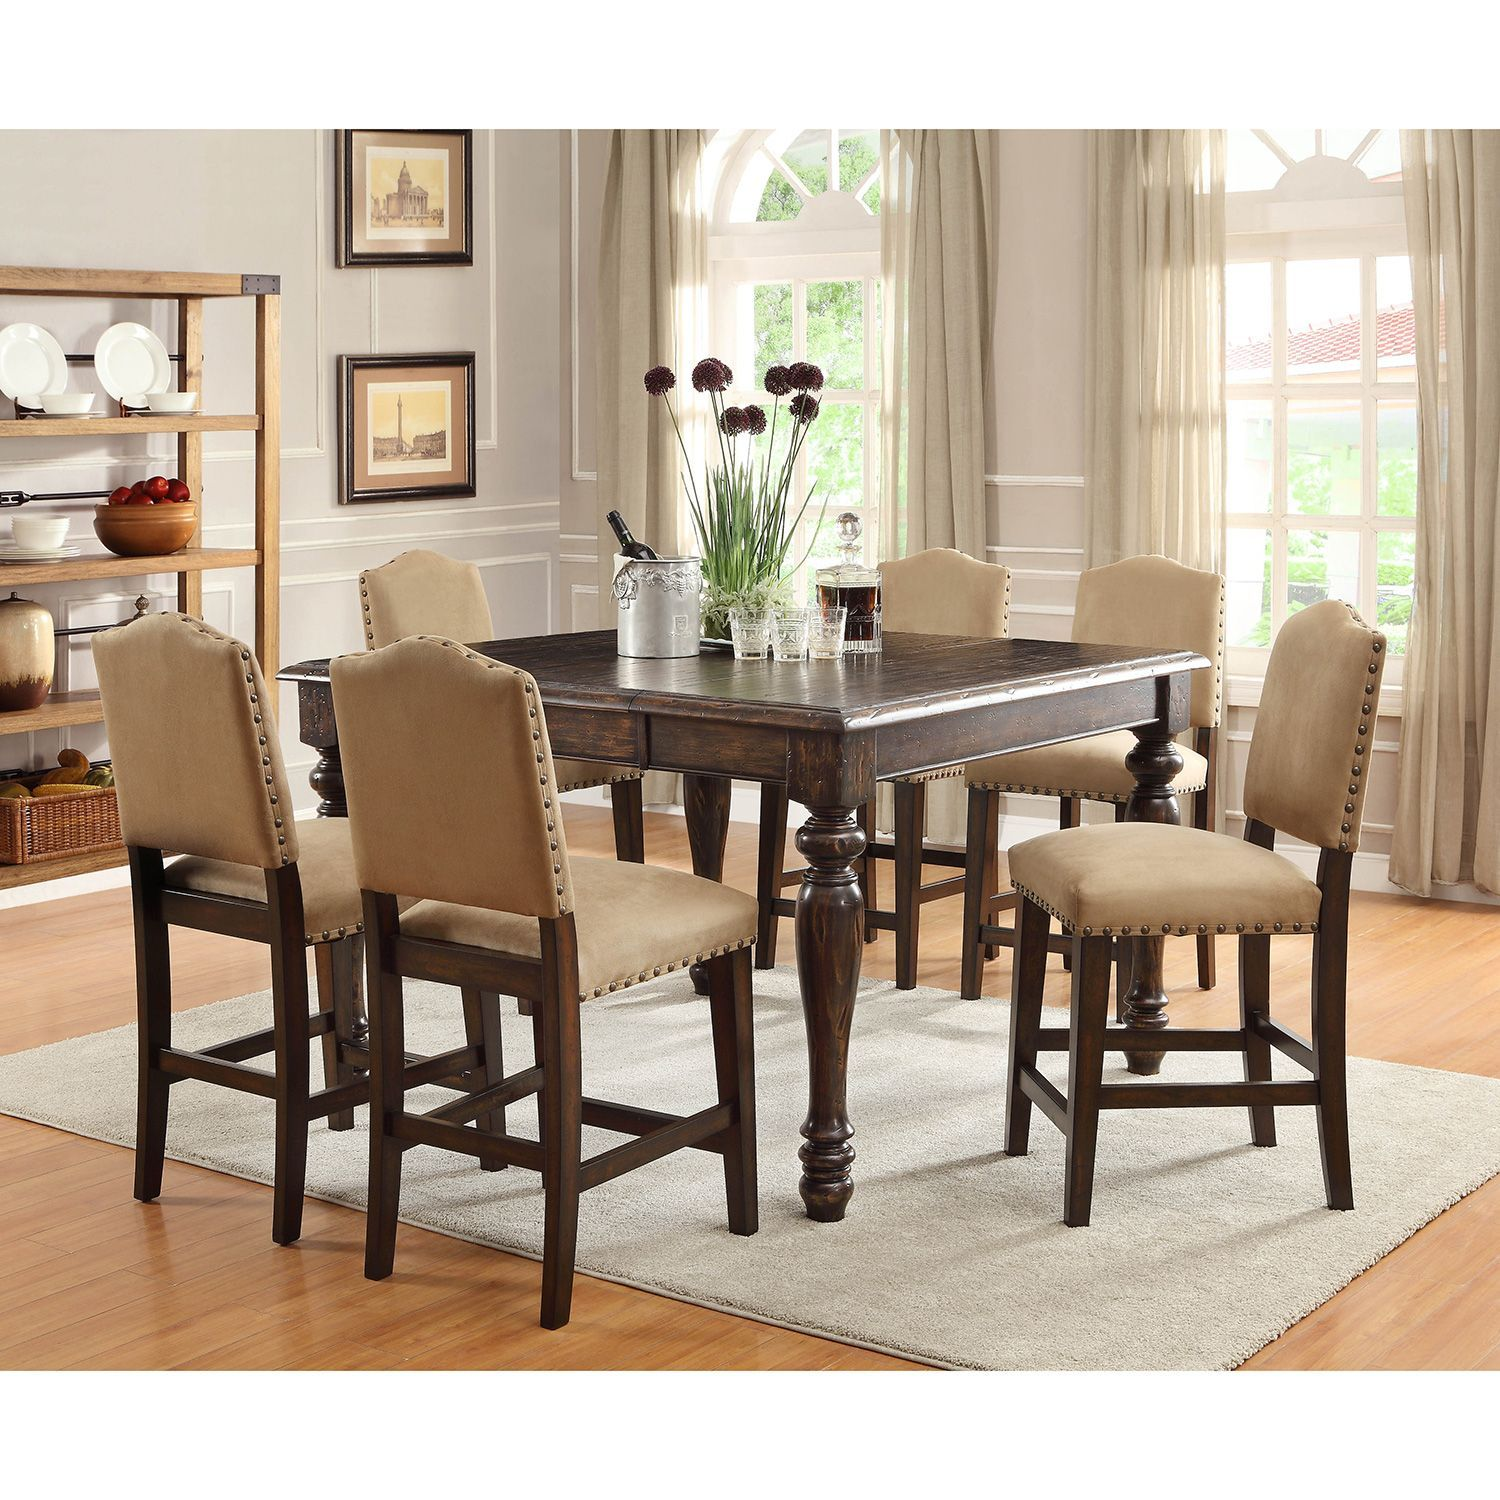 Dining Room Furniture Sale: Garrett Counter Height Dining Set